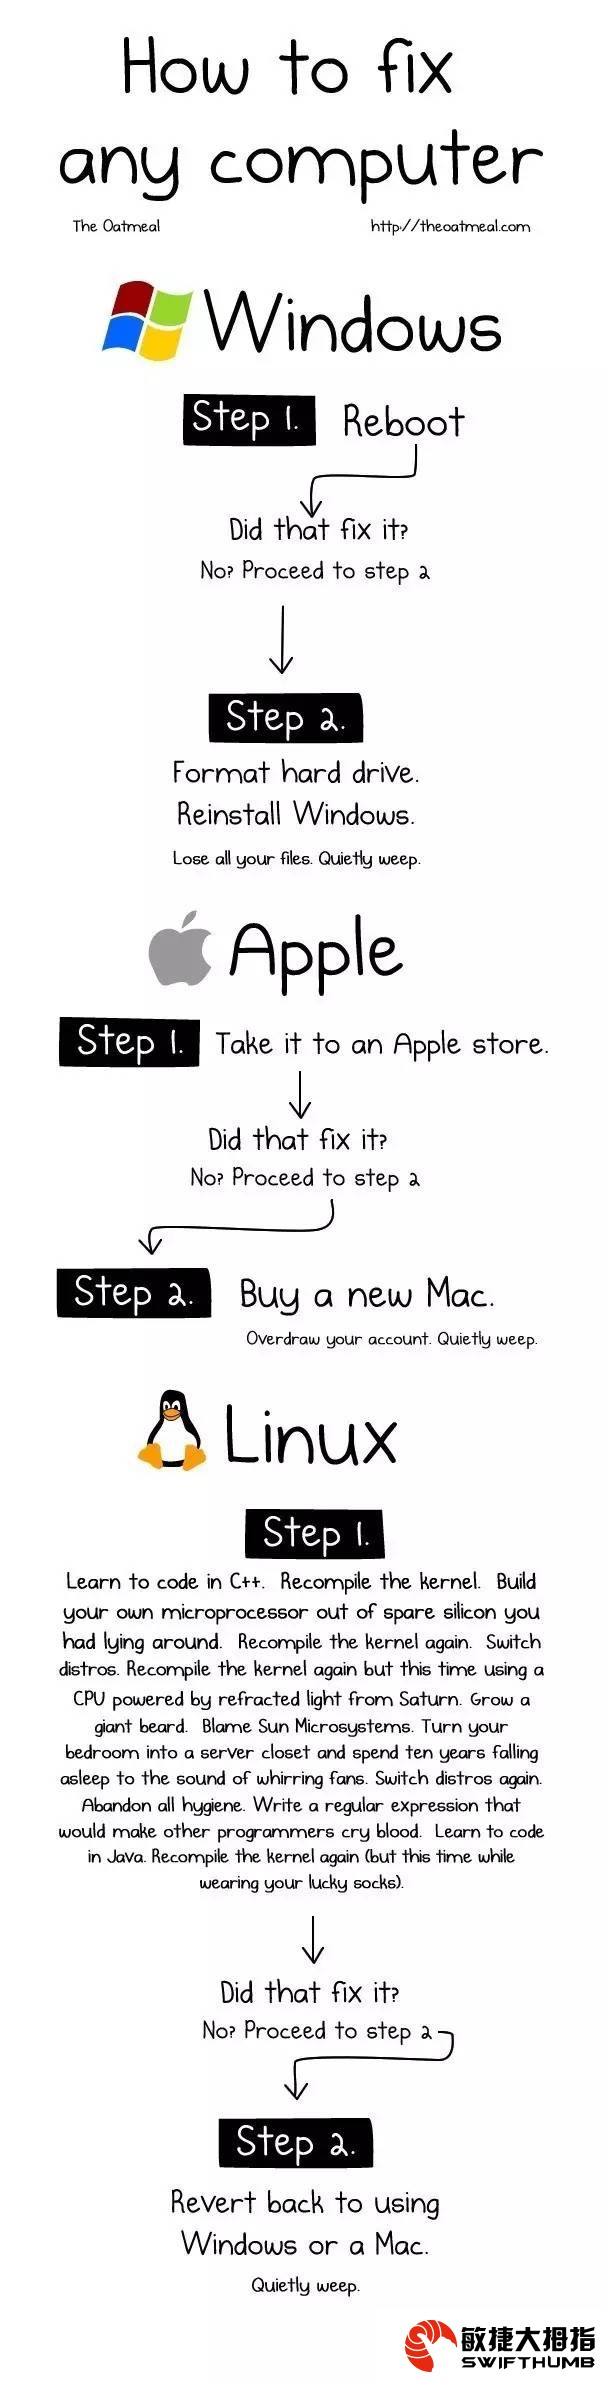 漫画:Windows、Mac 和 Linux 用户如何修电脑 How to Fix Any Computer - 敏捷大拇指 - 漫画:Windows、Mac 和 Linux 用户如何修电脑 how to fix any computer